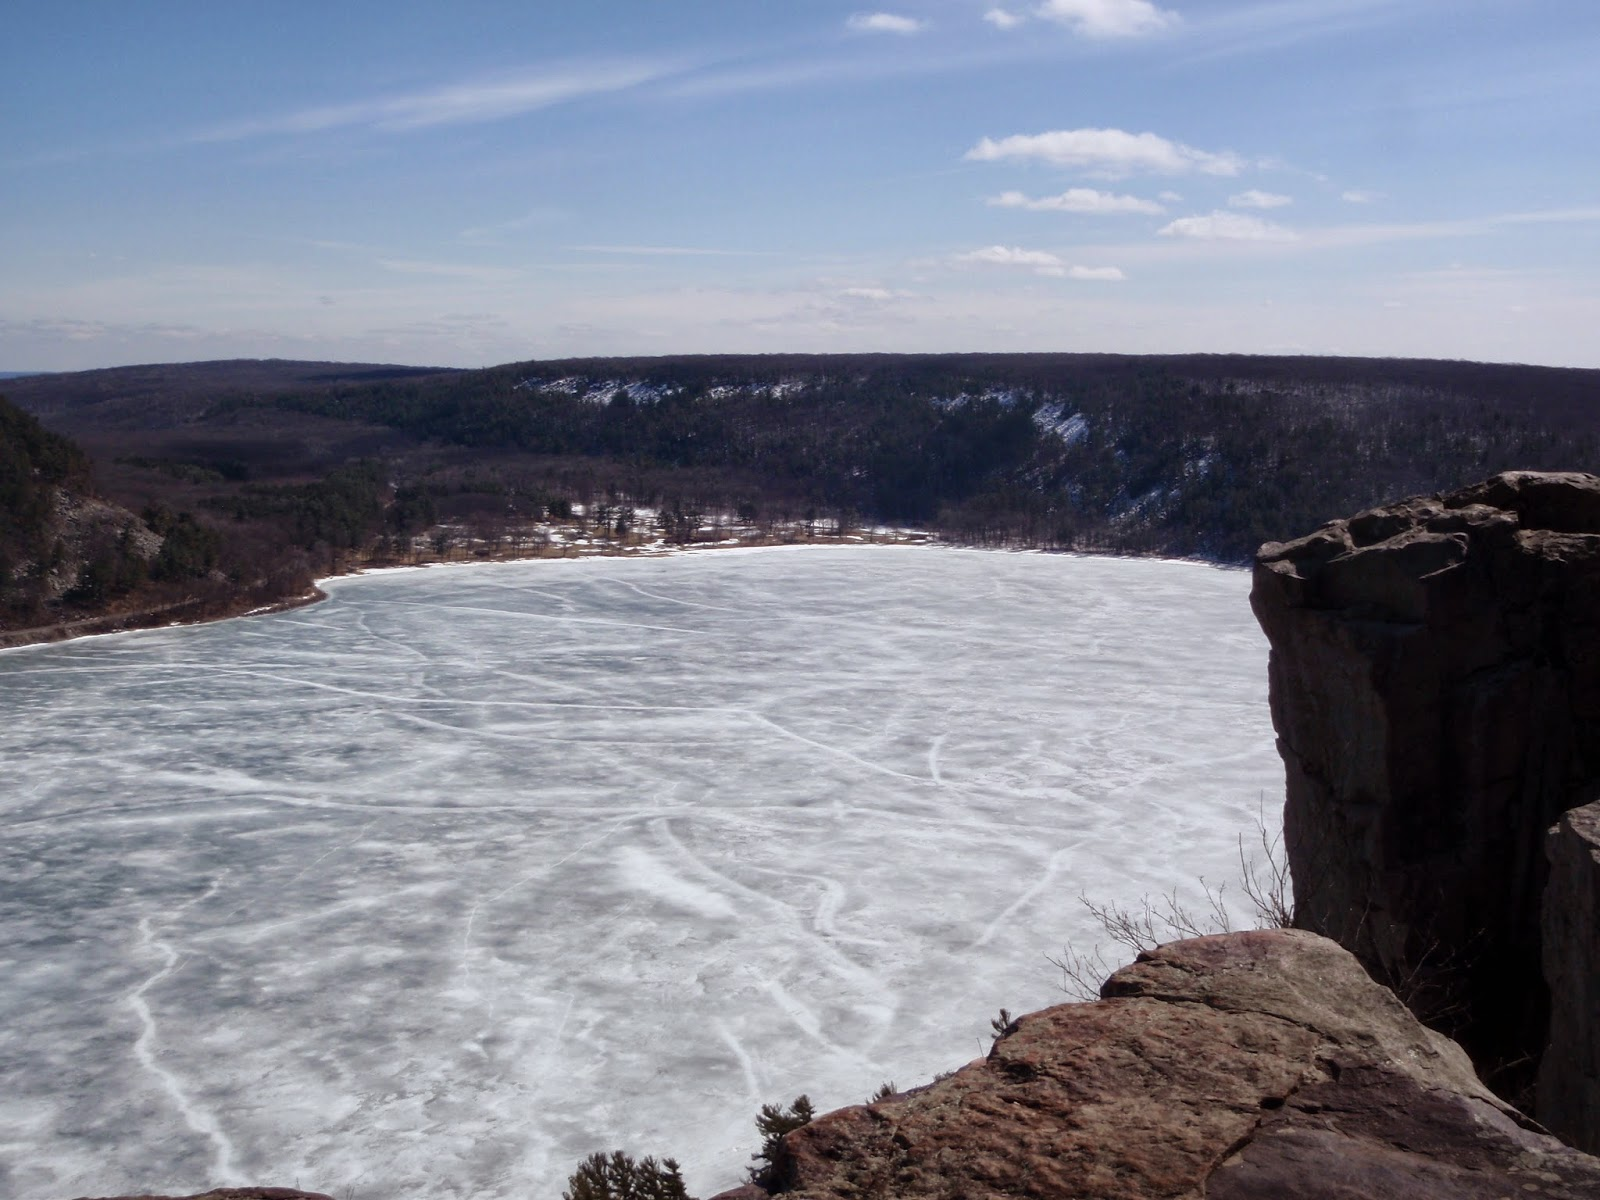 Devils Lake frozen over